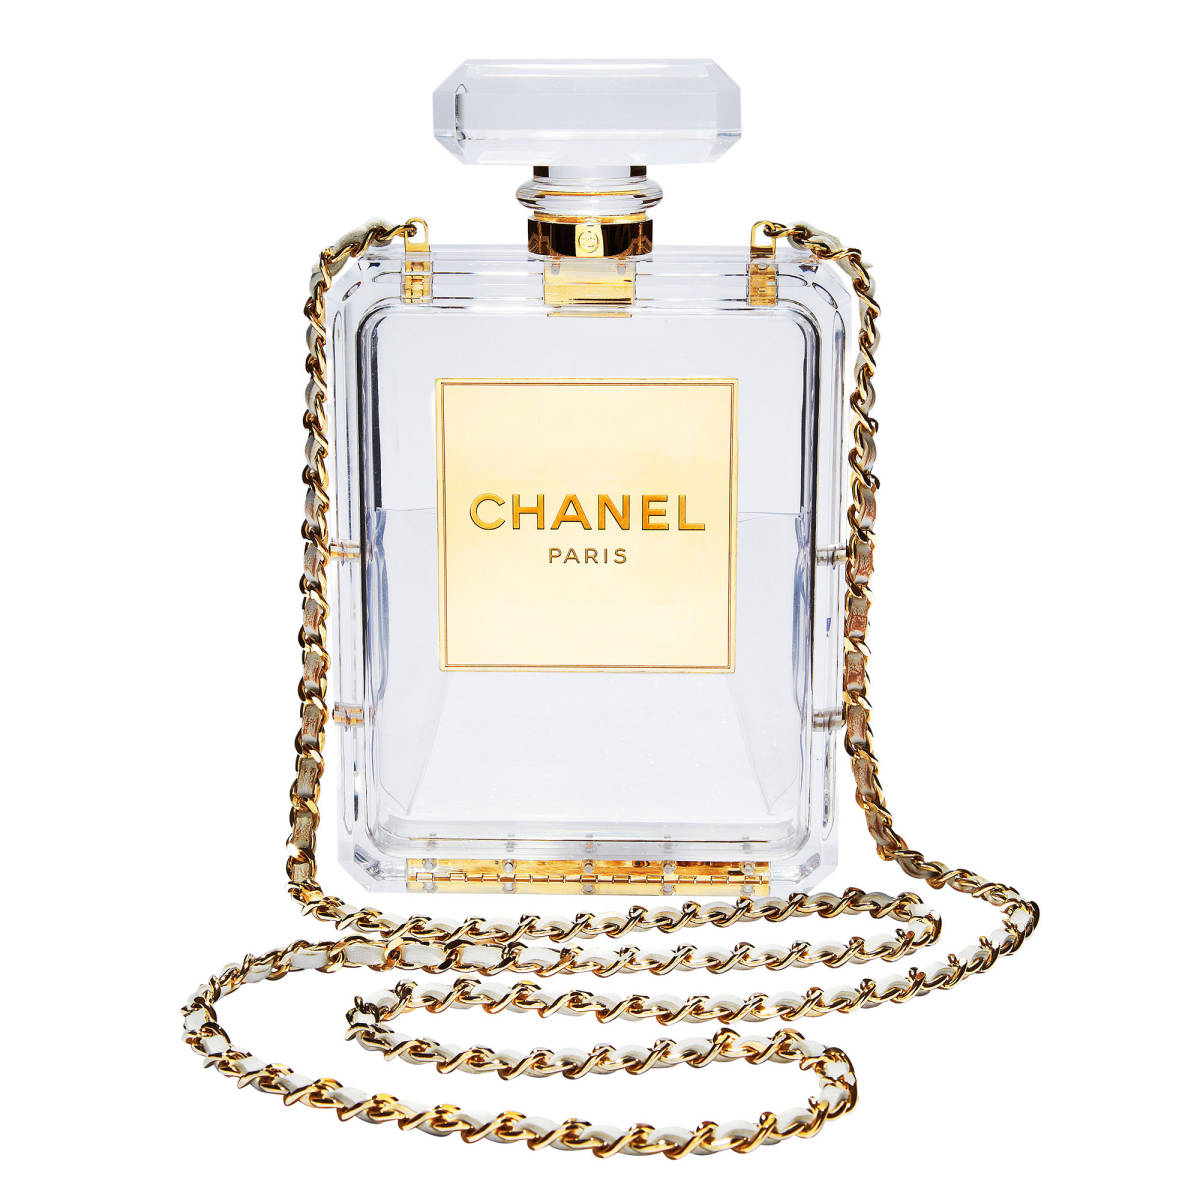 4a71b4916488d5 most novel beautiful super expensive playful Chanel bag. The Chanel No 5 perfume  bottle ...